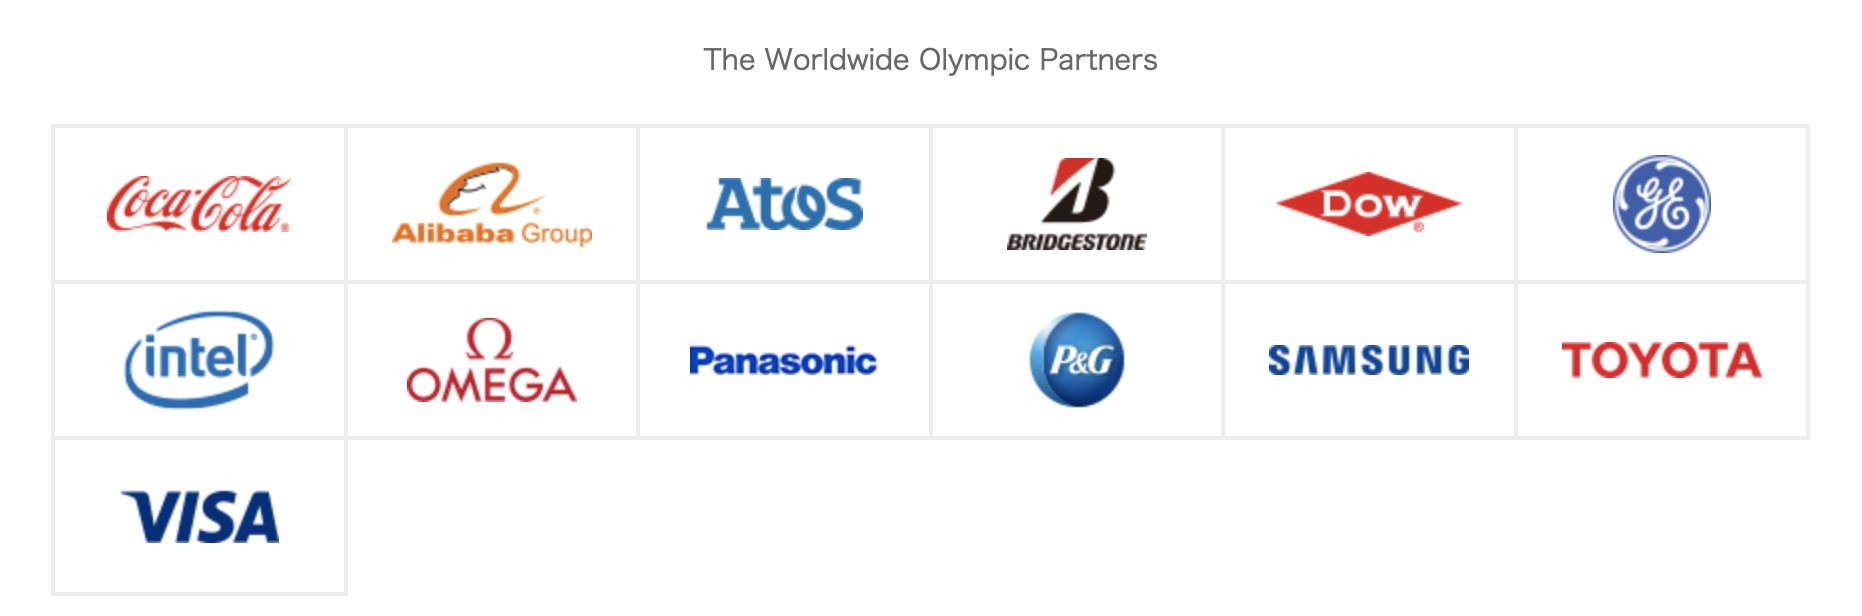 Tokyo 2020 Olympic Sponsors - Worldwide Partners